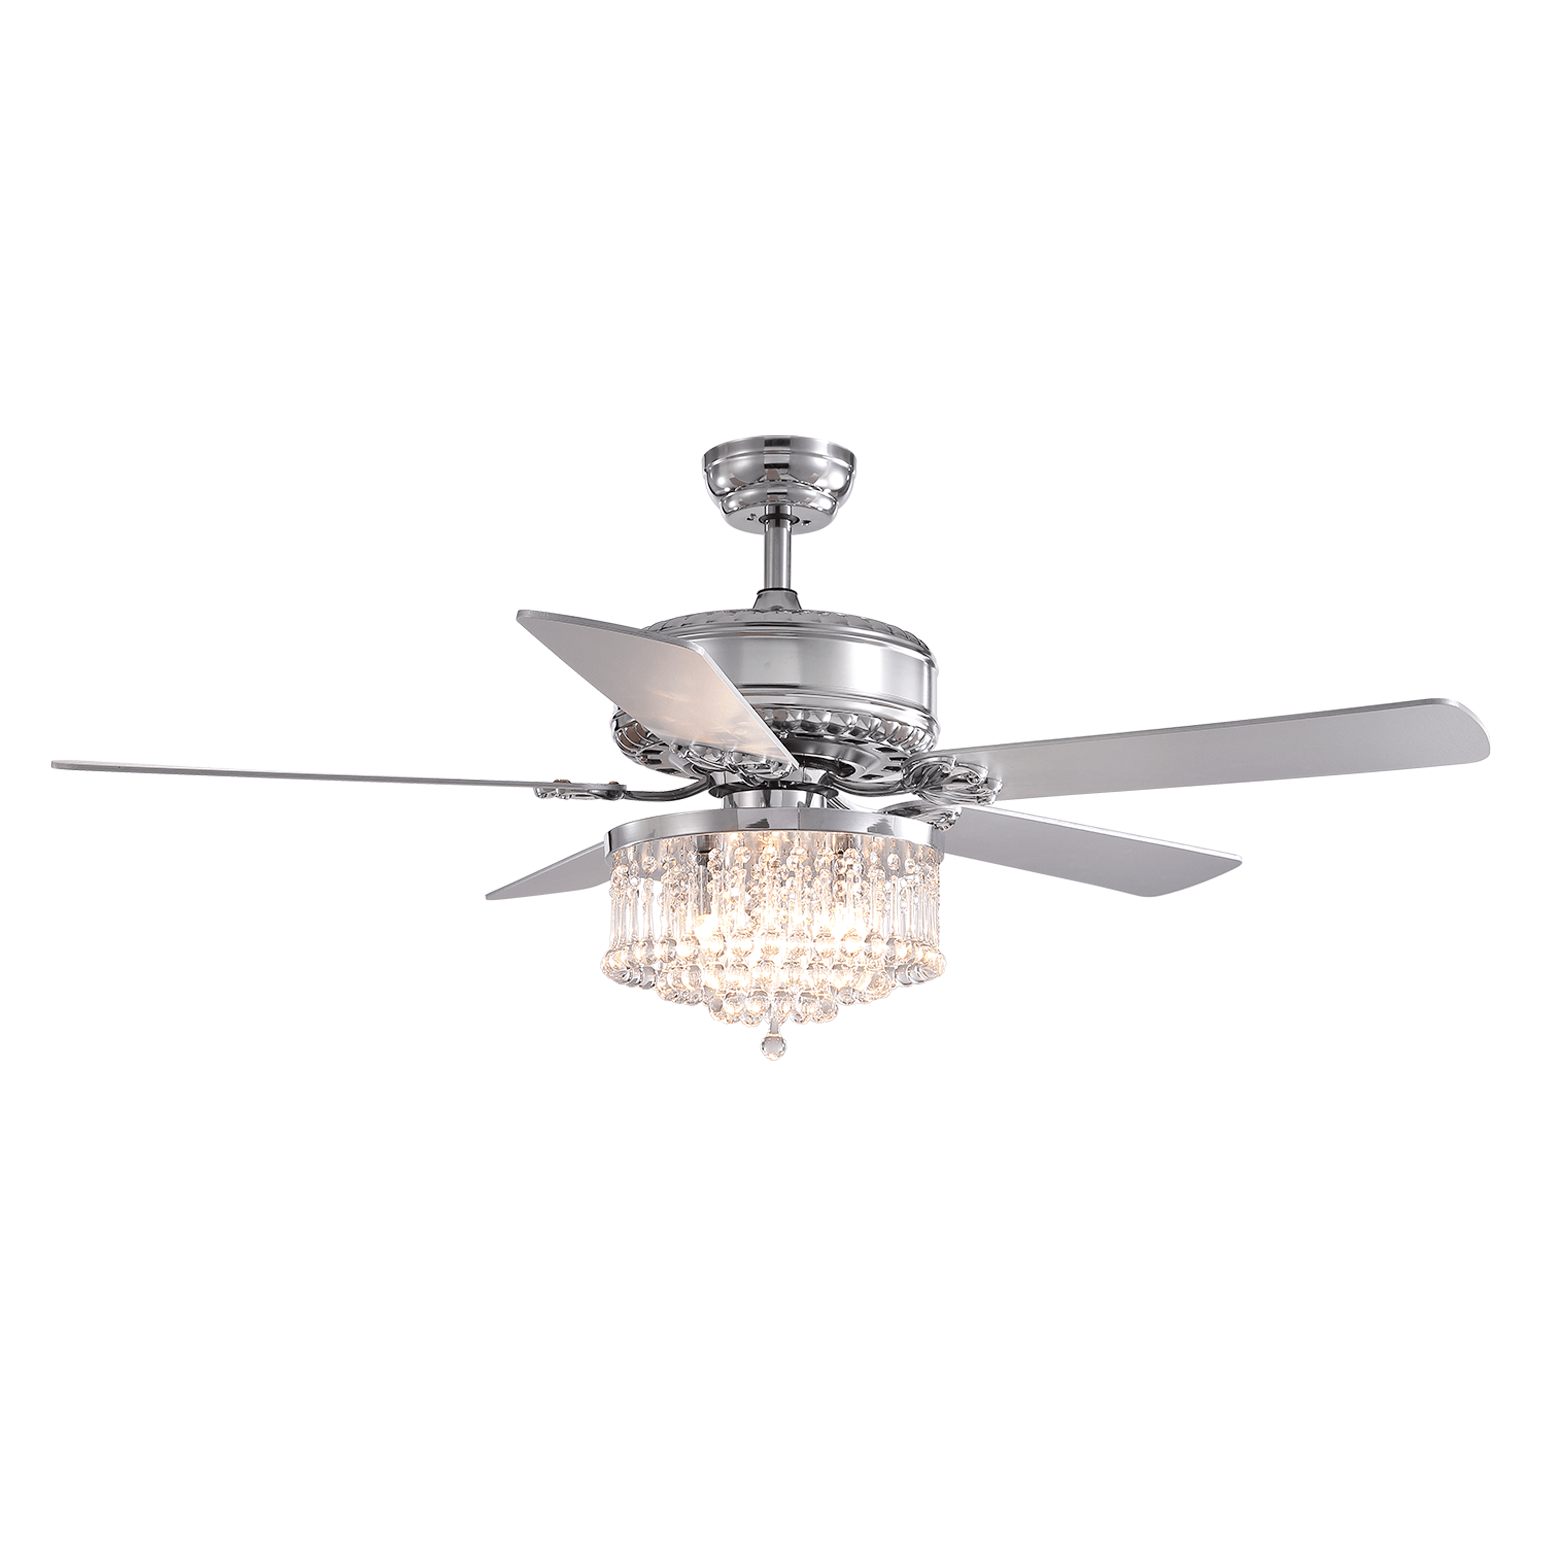 LED Crystal Ceiling Fan with Chrome